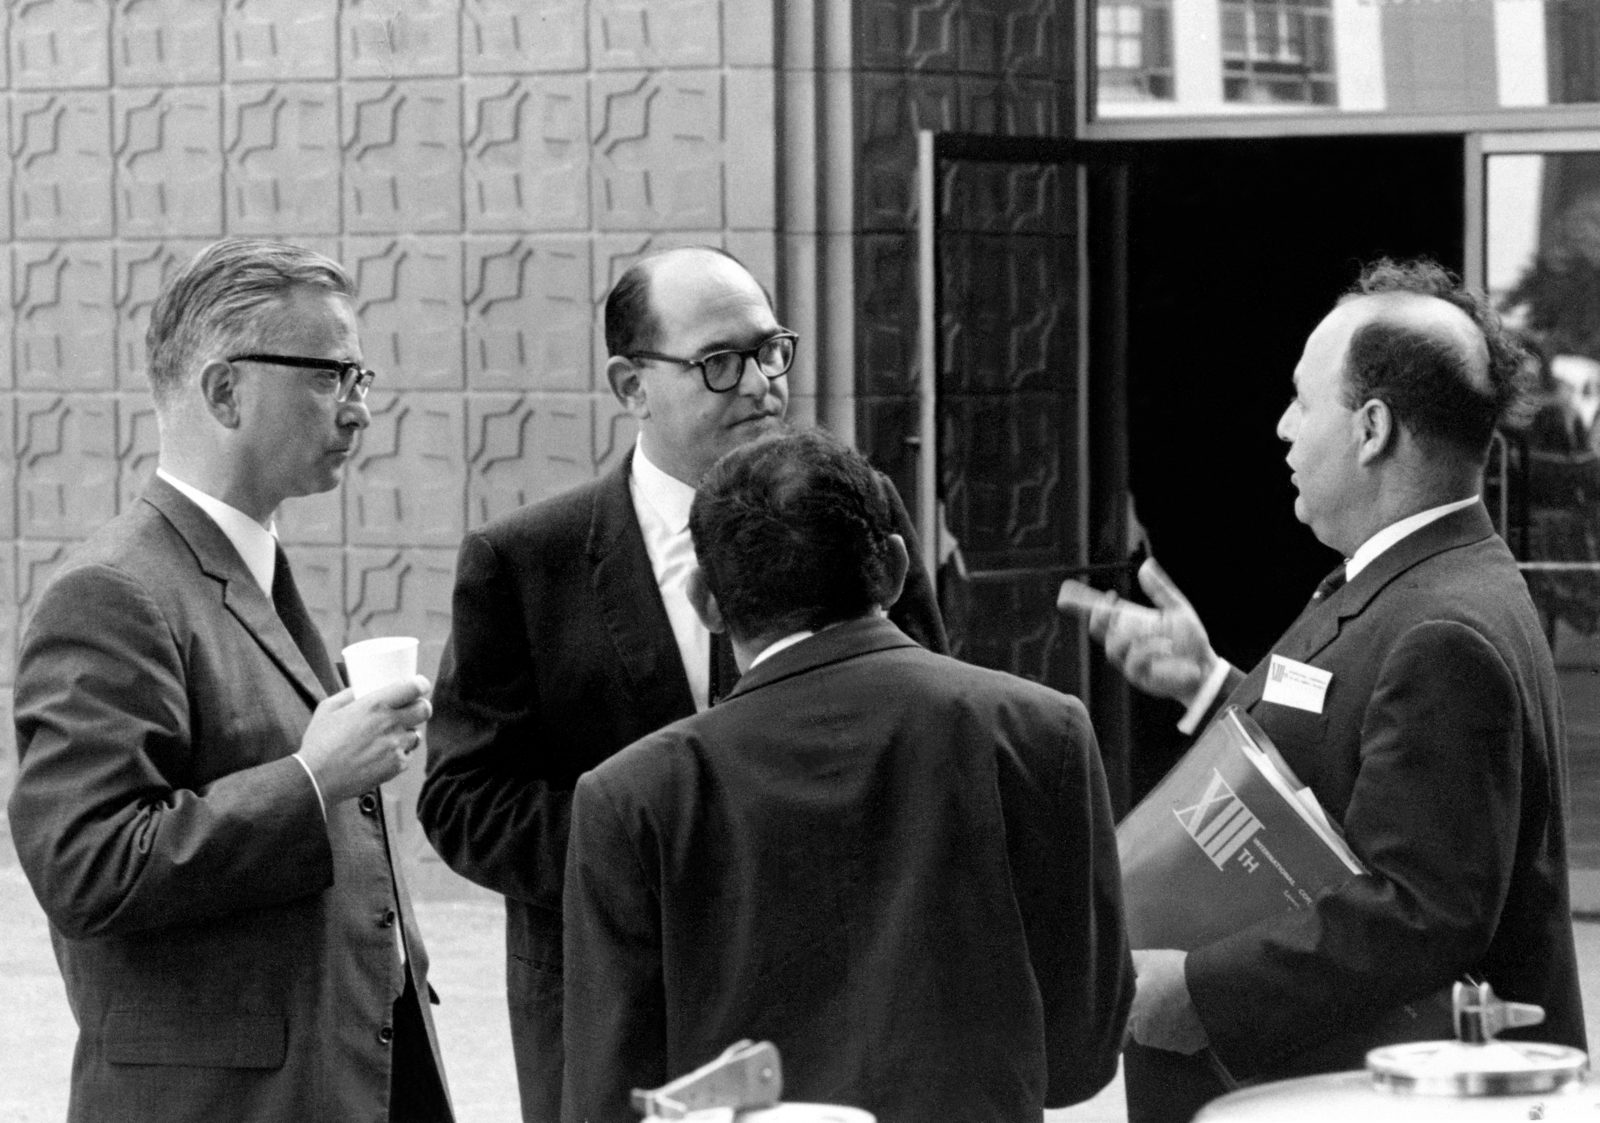 Lawrence Radiation Laboratory hosts the High Energy Physics Meeting. Clockwise from left Klaus Bottstein of the Max Planck Institute, Munich; Gerson Goldhaber, LRL; Gideon Alexander and Gideon Yekutieli, both of the Weizmann Institute of Science, Isreal. Photo taken September 1966. Morgue 1966-150 [Photographer: Donald Cooksey]